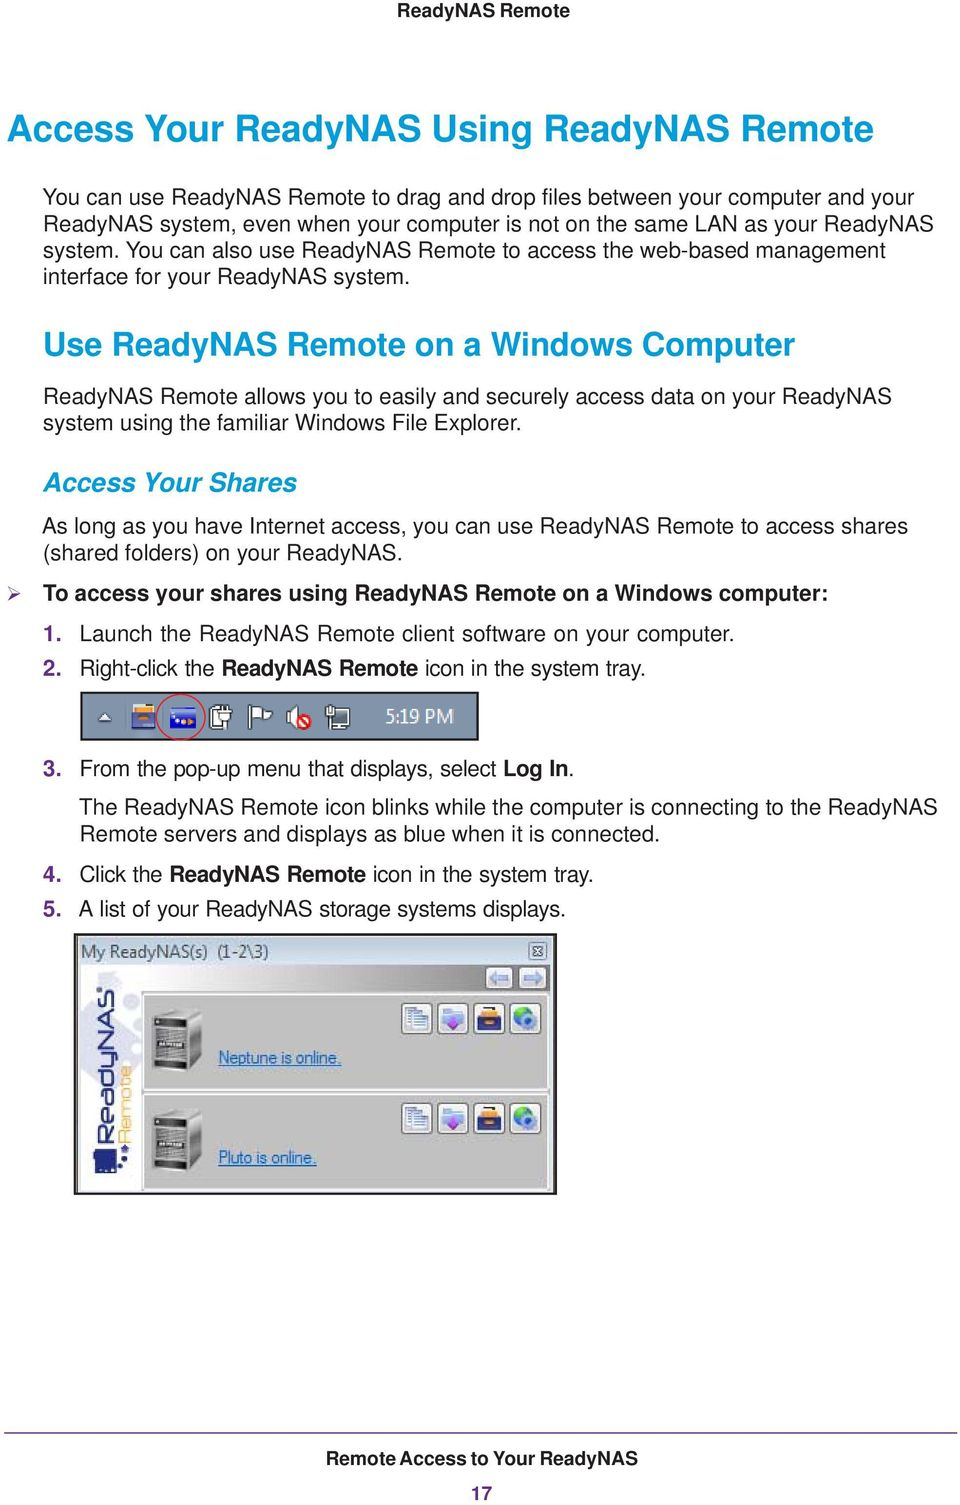 Use ReadyNAS Remote on a Windows Computer ReadyNAS Remote allows you to easily and securely access data on your ReadyNAS system using the familiar Windows File Explorer.